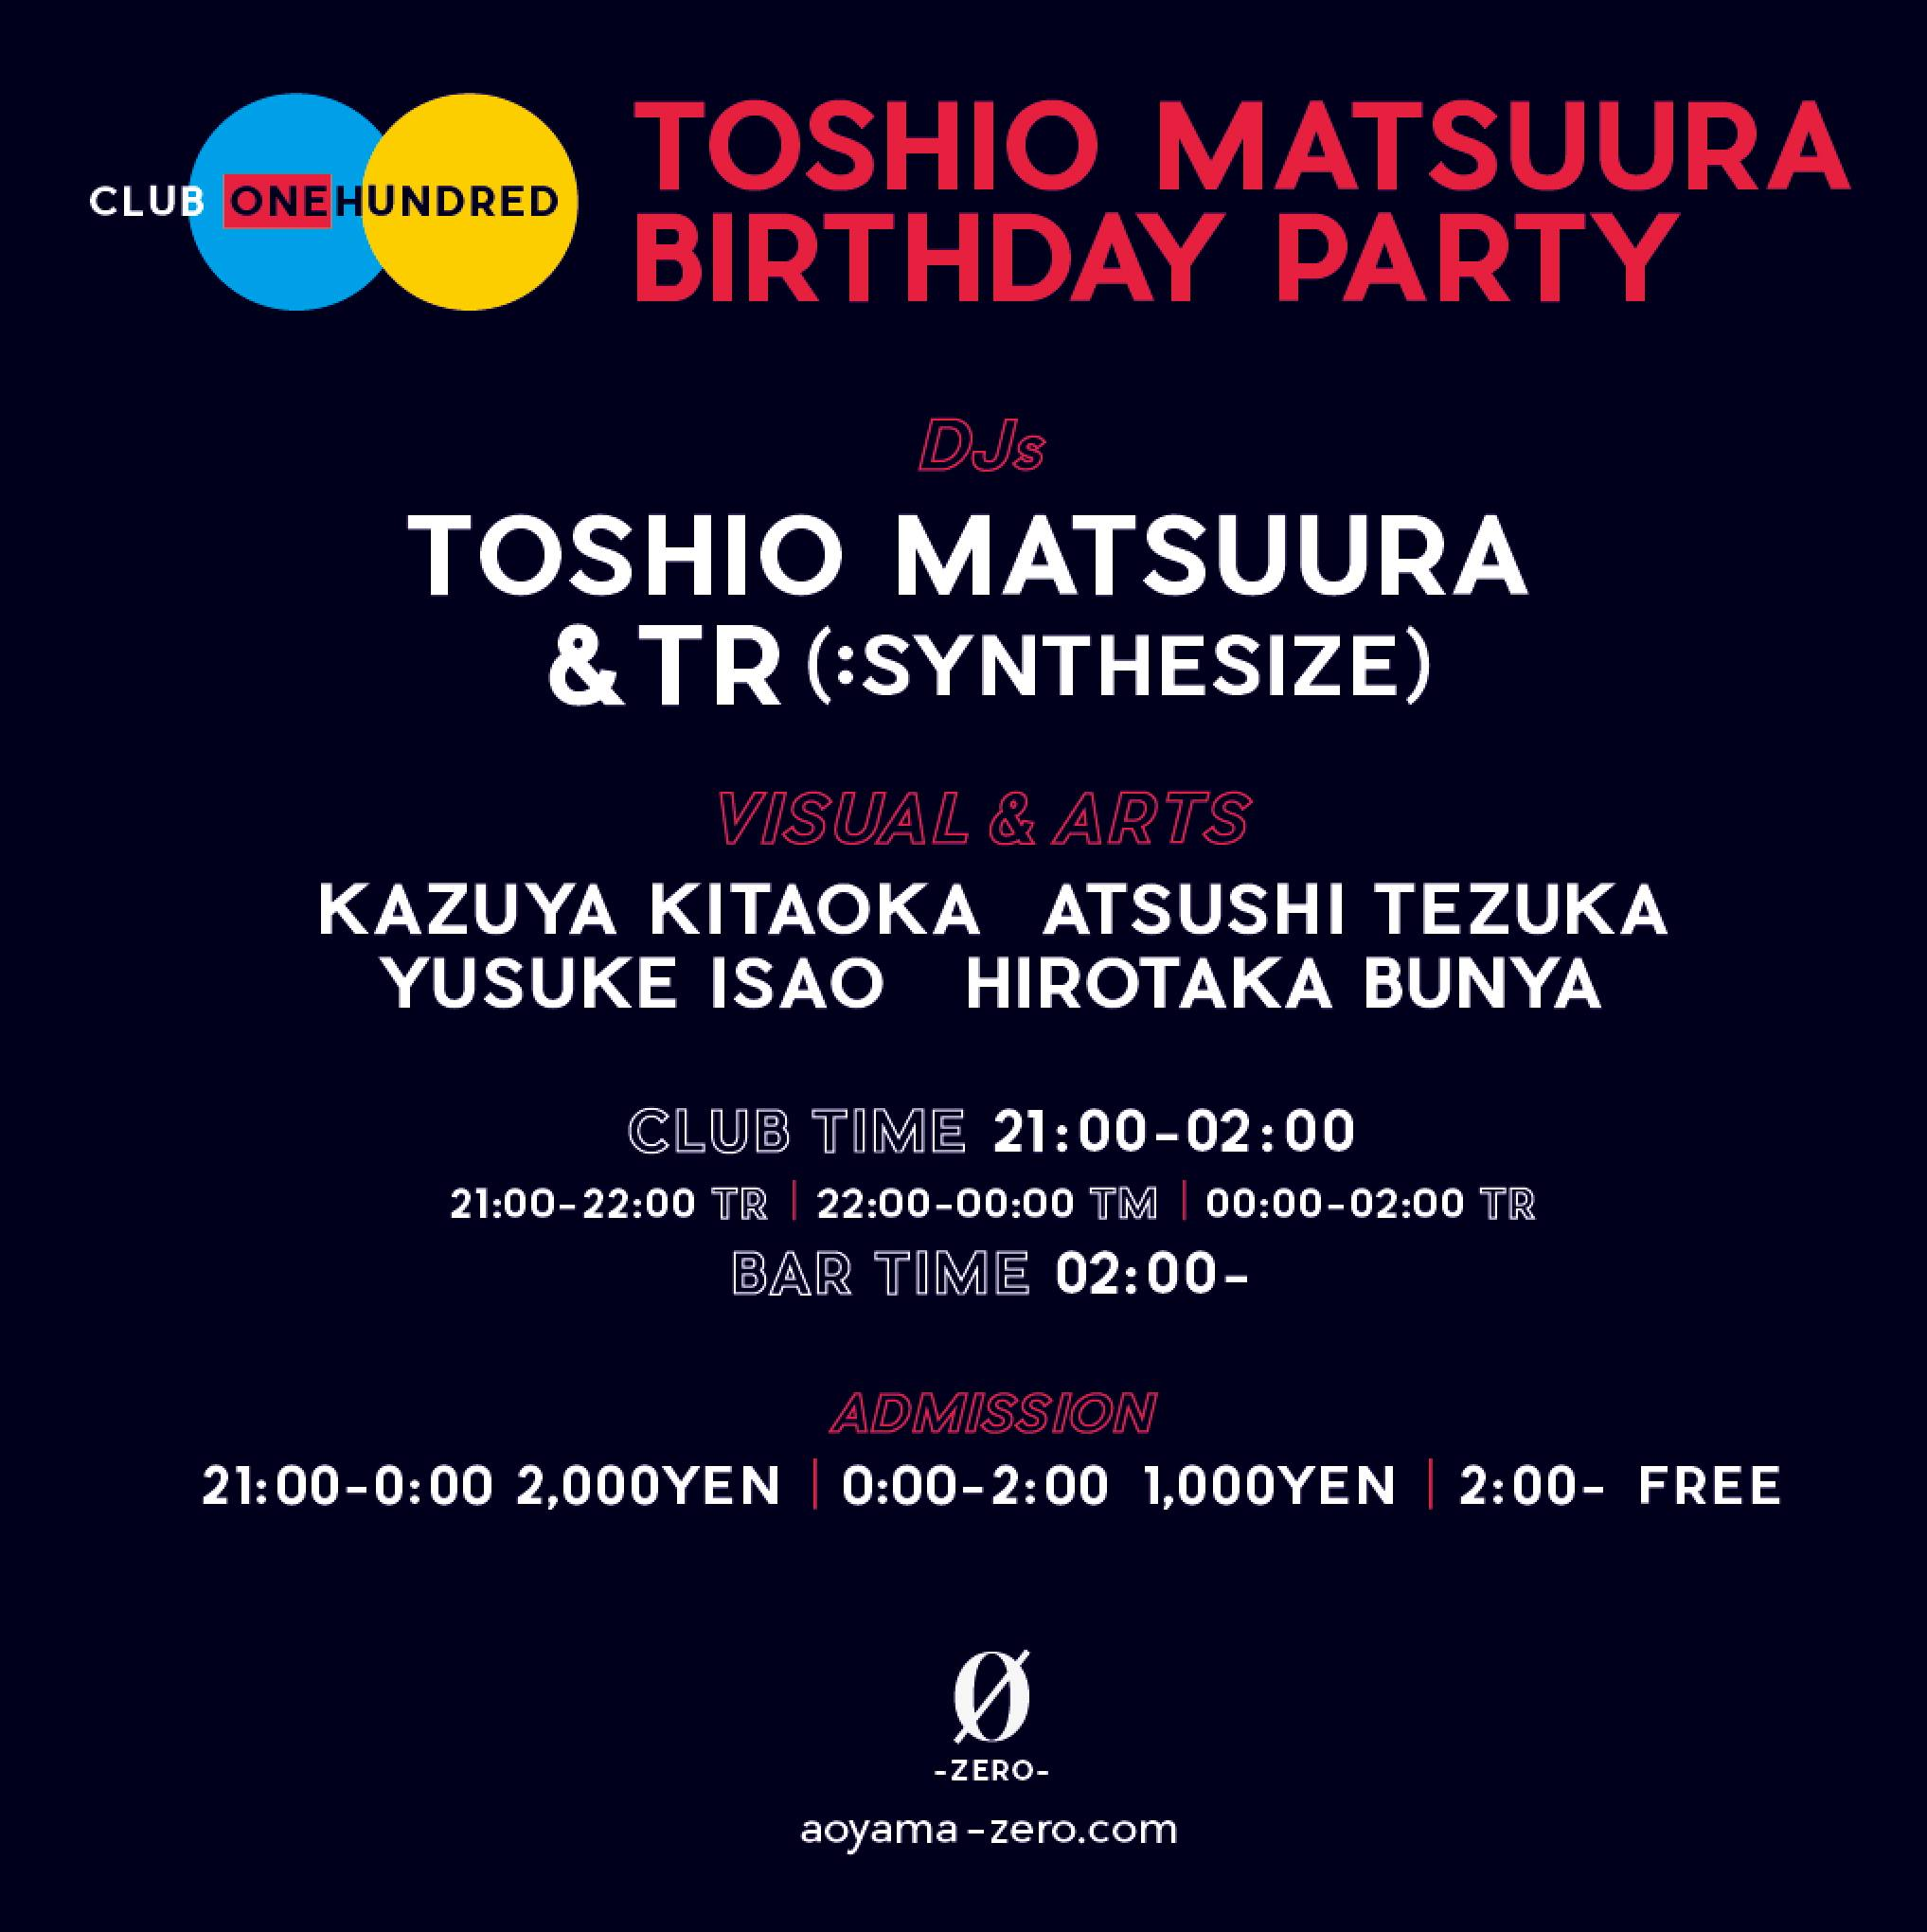 CLUB100 (One Hundred)       TOSHIO MATSUURA BIRTHDAY PARTY